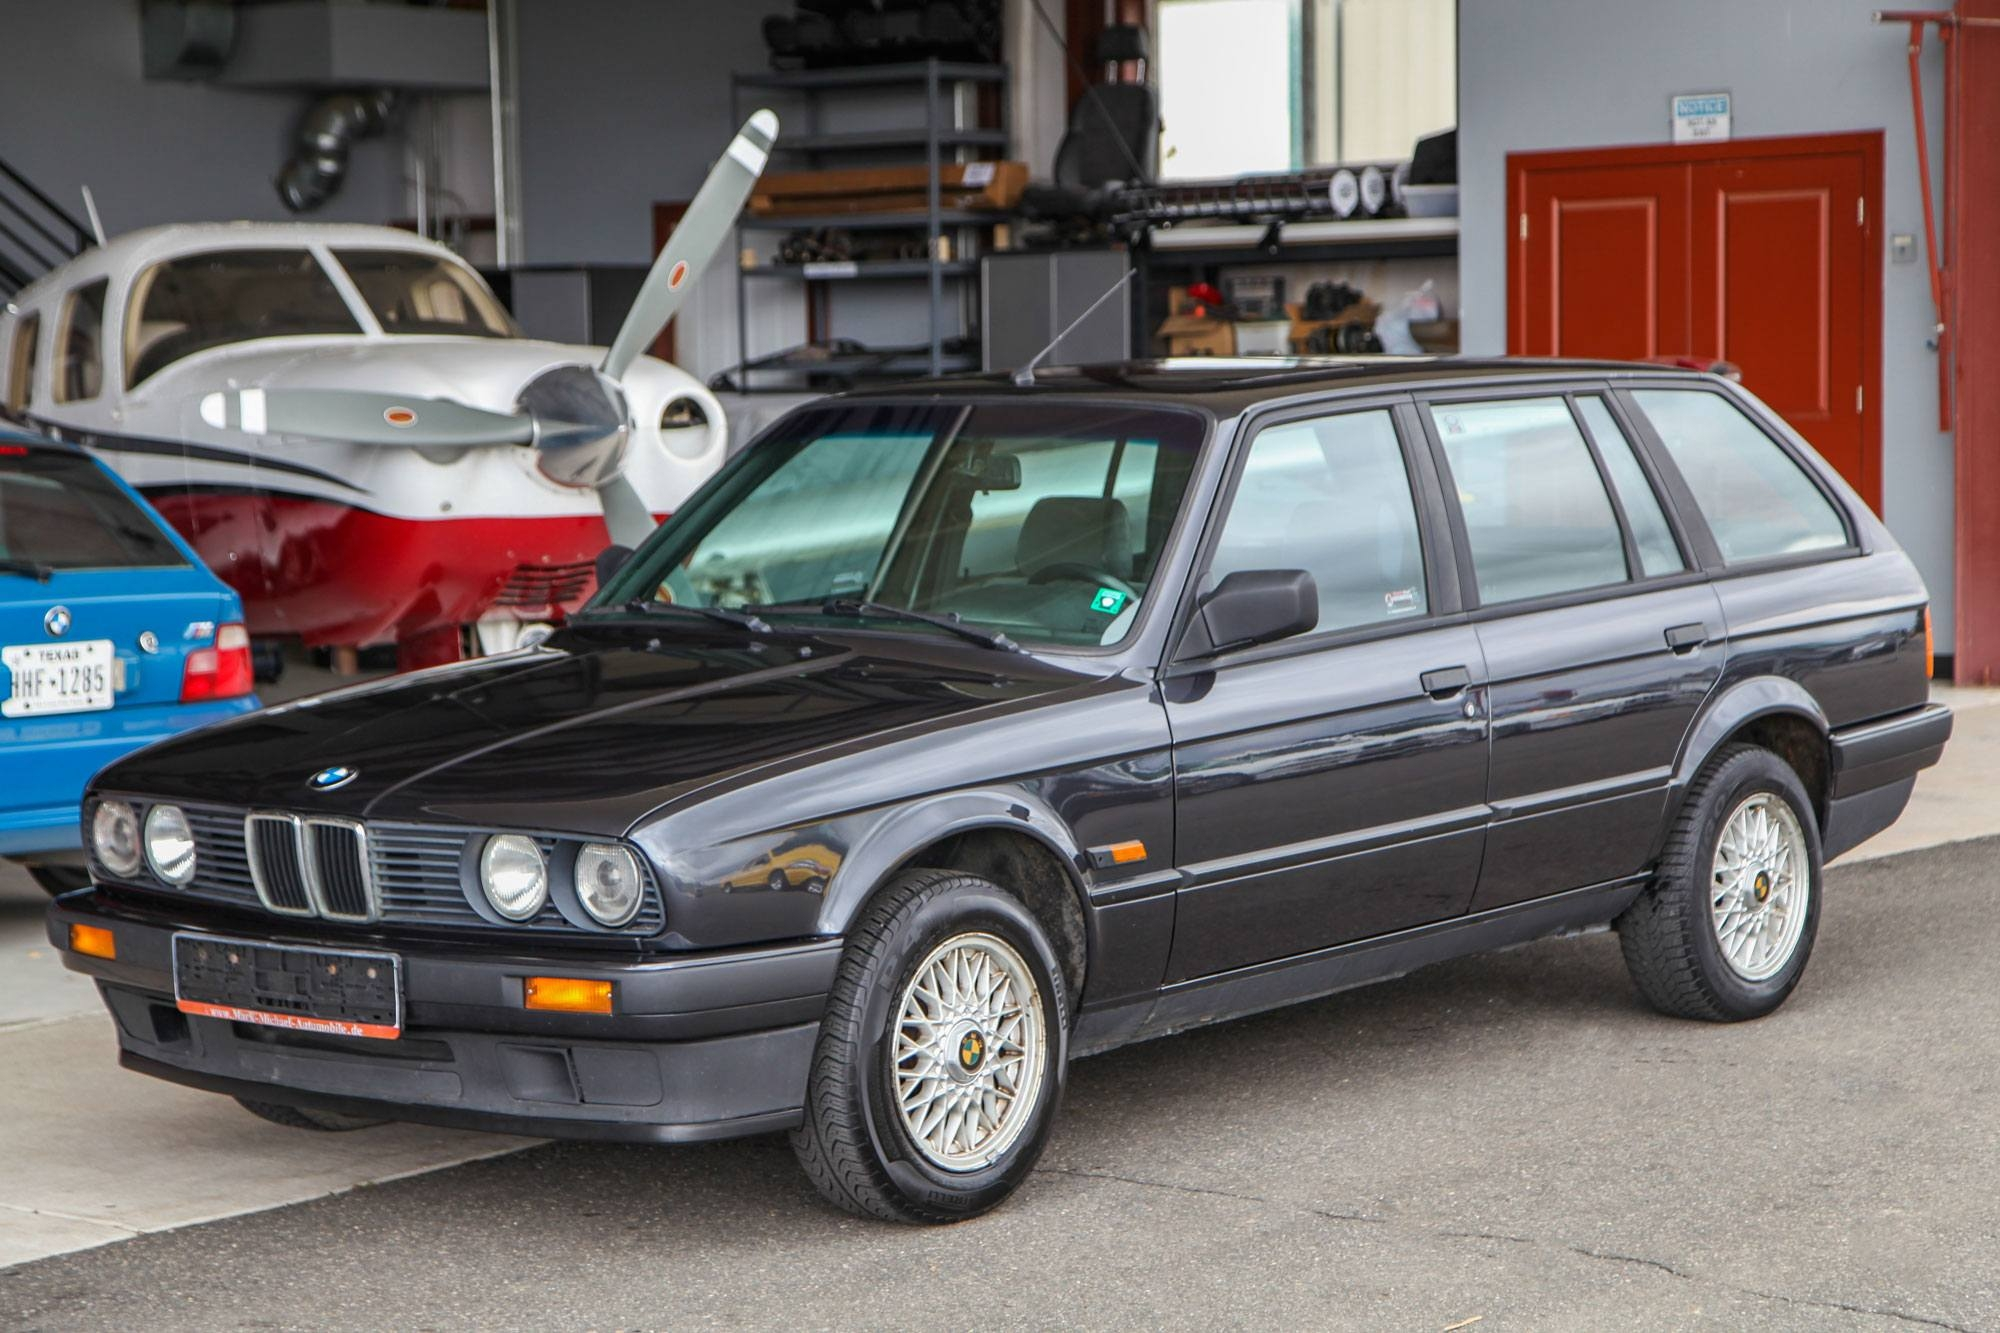 1989 bmw e30 318i touring glen shelly auto brokers denver colorado. Black Bedroom Furniture Sets. Home Design Ideas